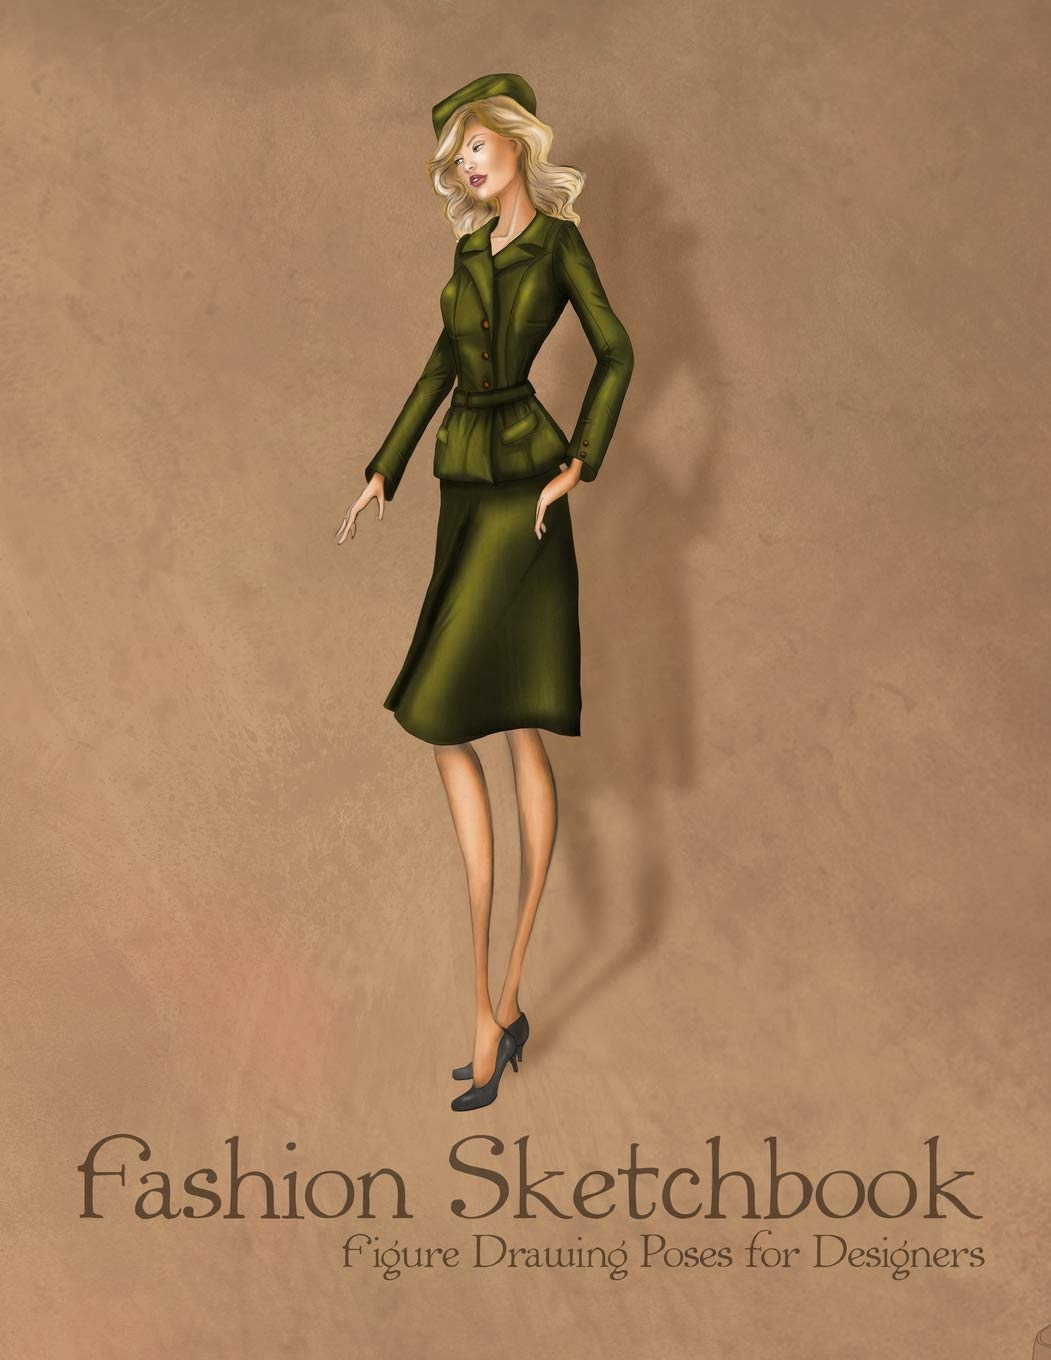 Fashion Sketchbook Figure Drawing Poses for Designers Large